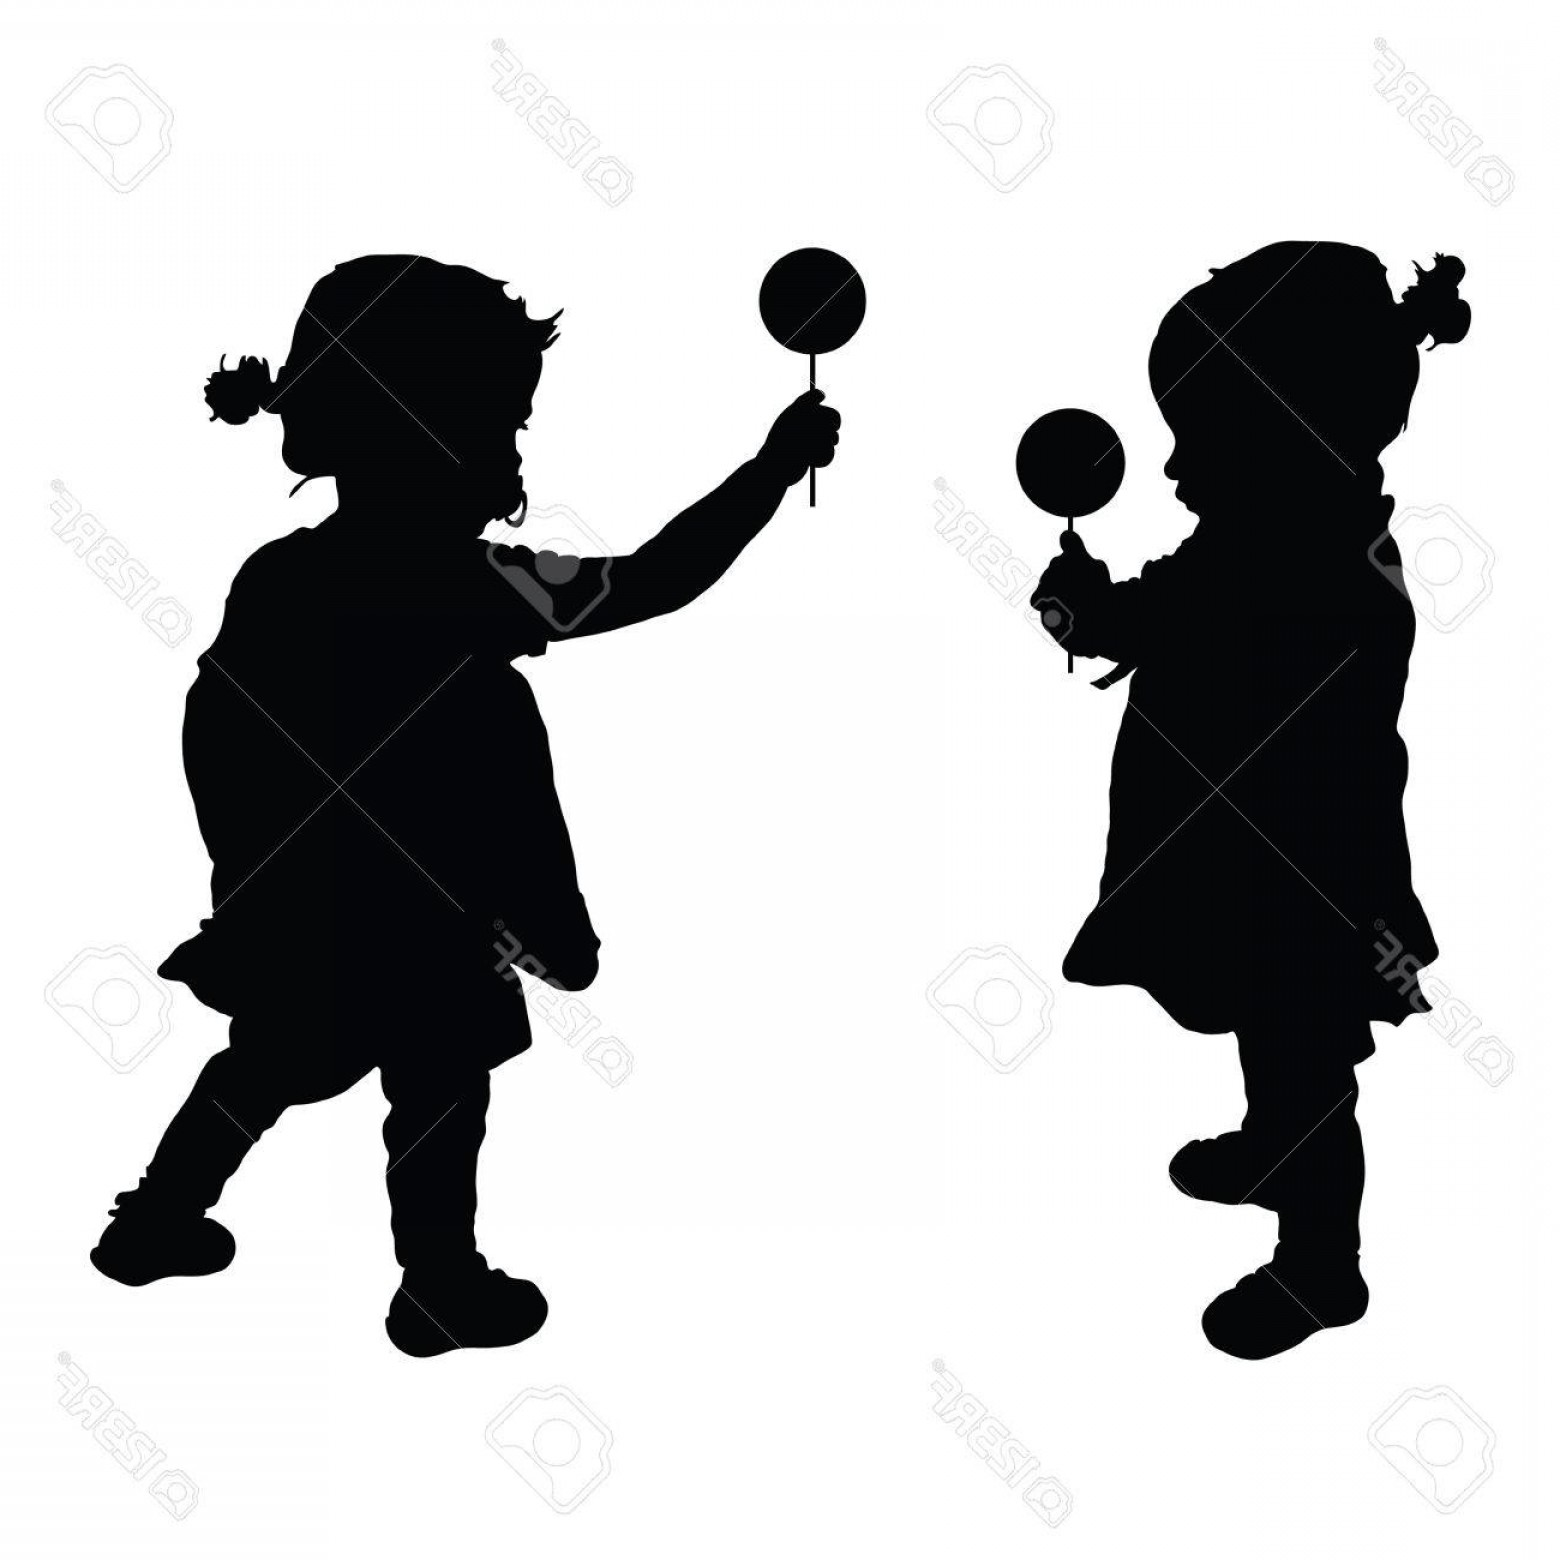 Lollipop Vector Silhouette: Photostock Vector Child Set With Lollipop Silhouette Illustration